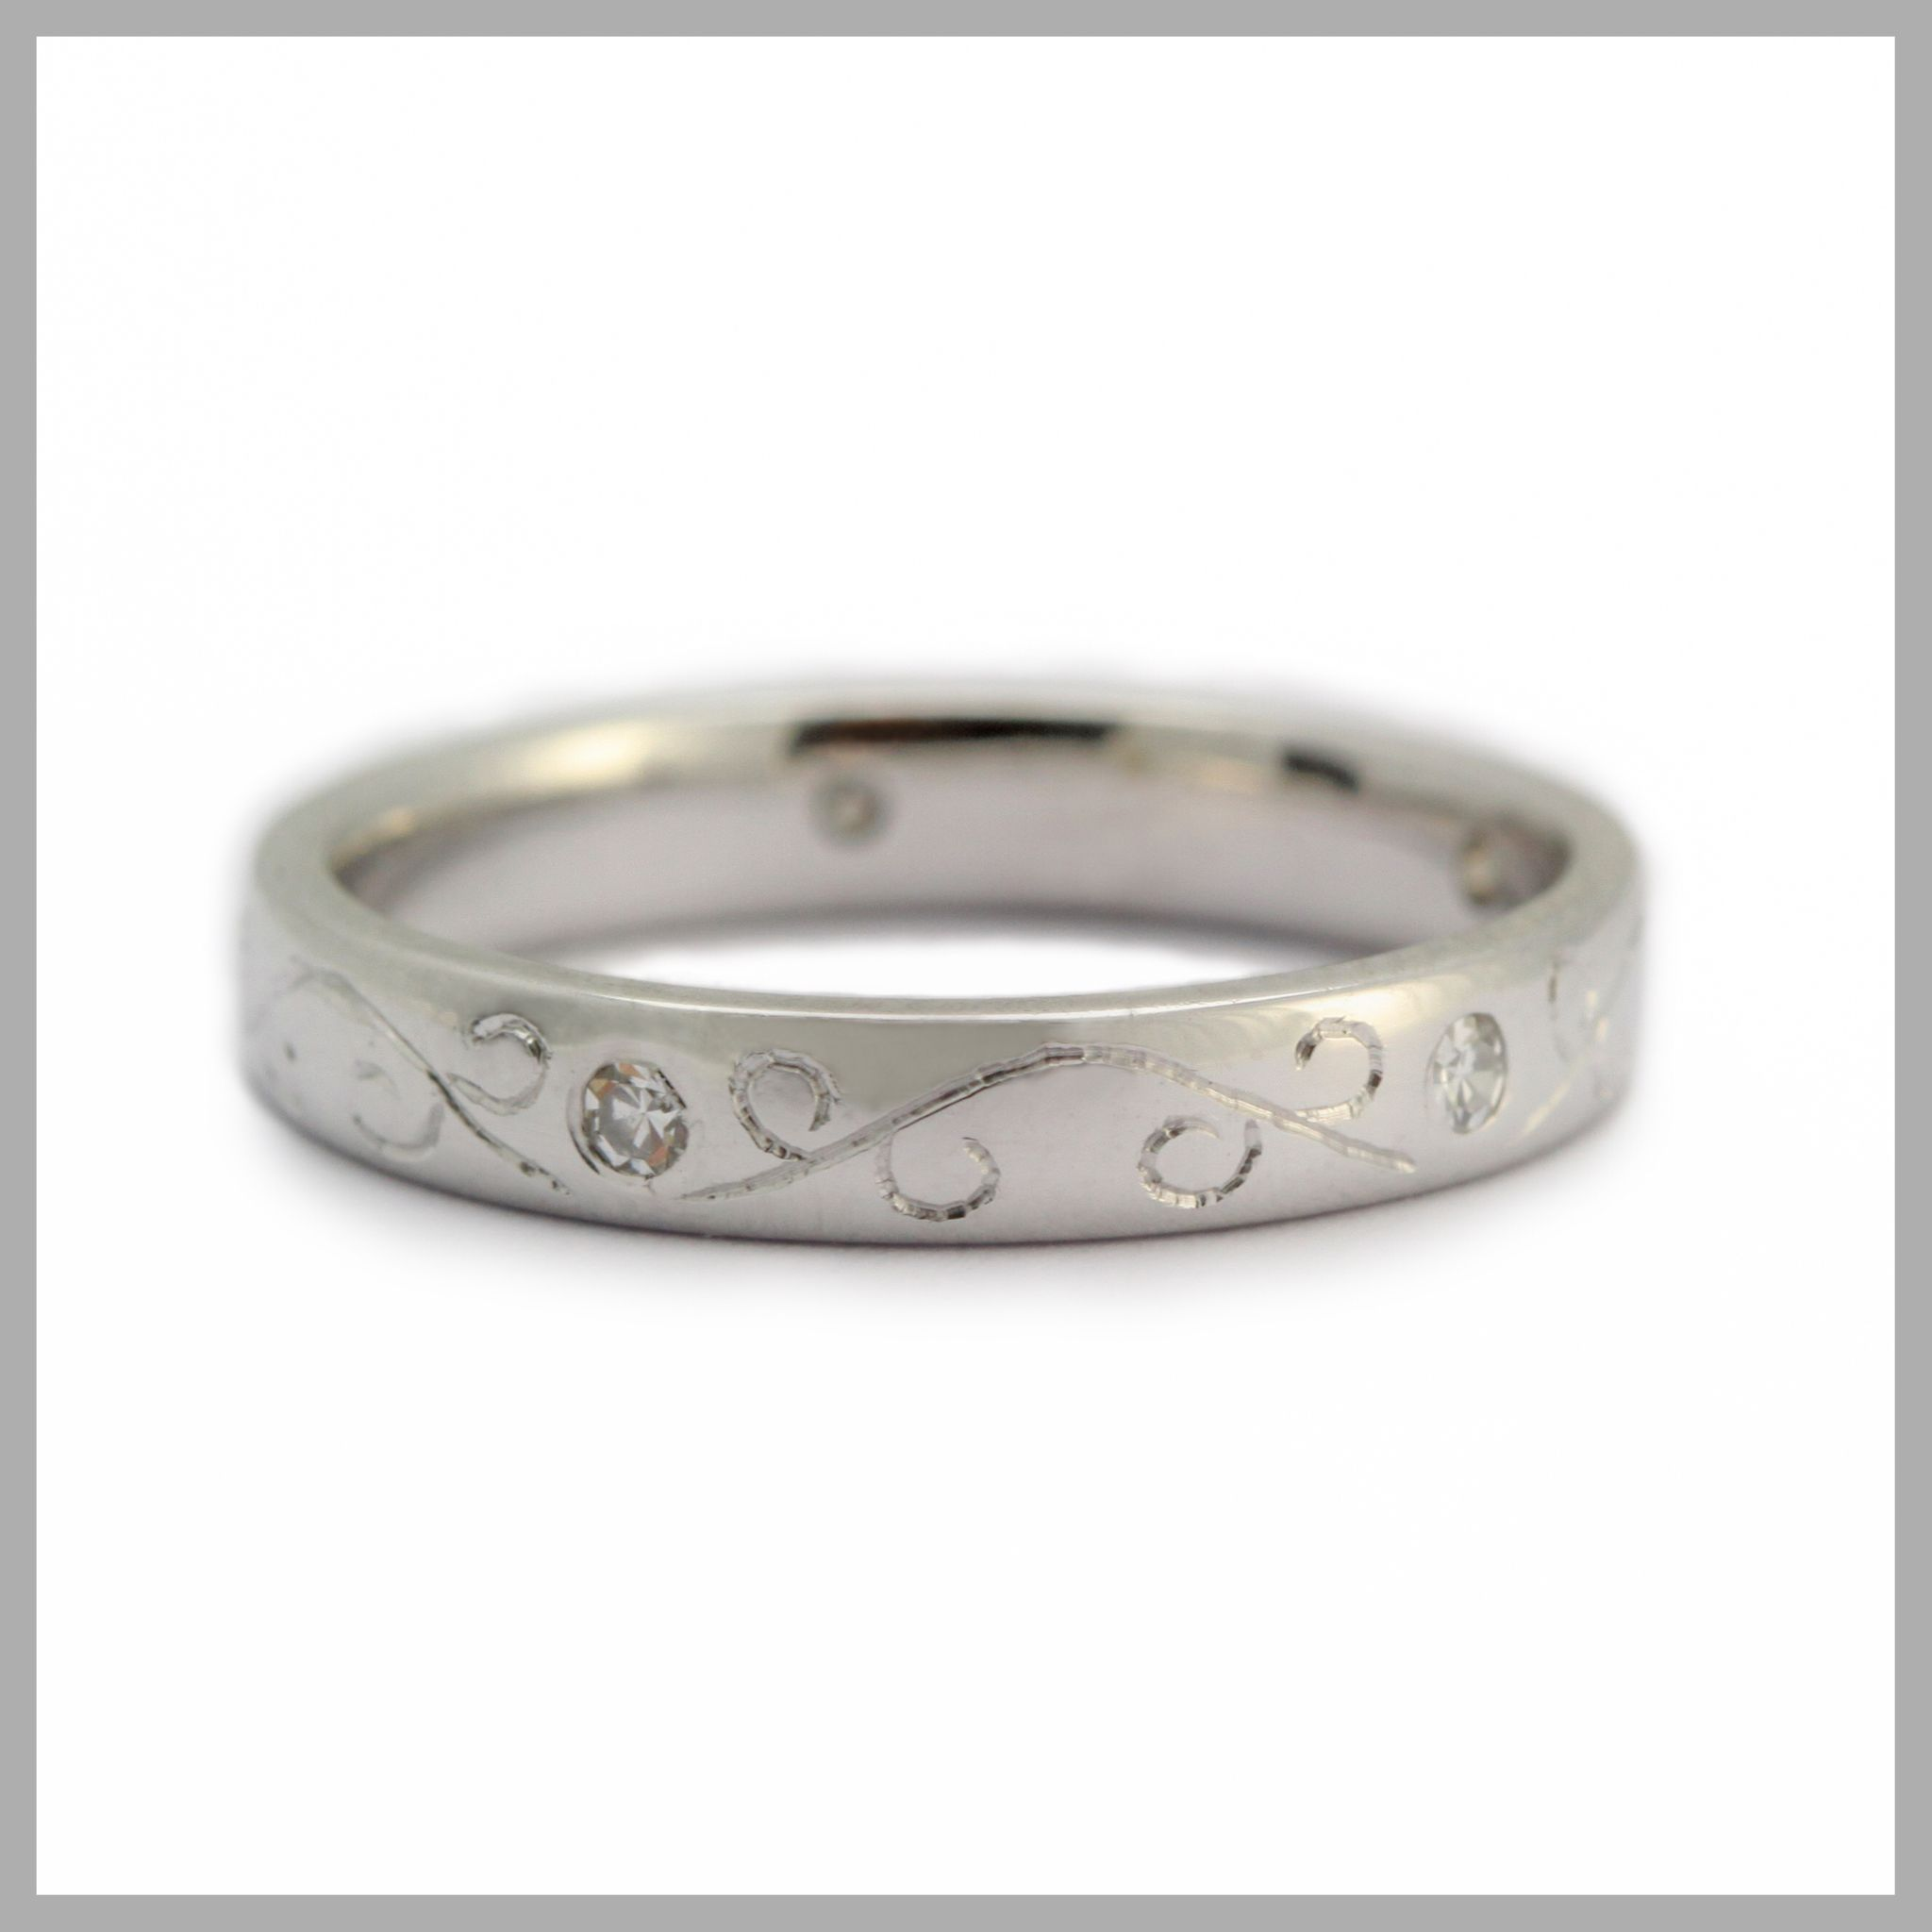 Diamond Ring Handmade Bespoke Gold Platinum Palladium Contemporary Wedding Engagement Scroll Engraving